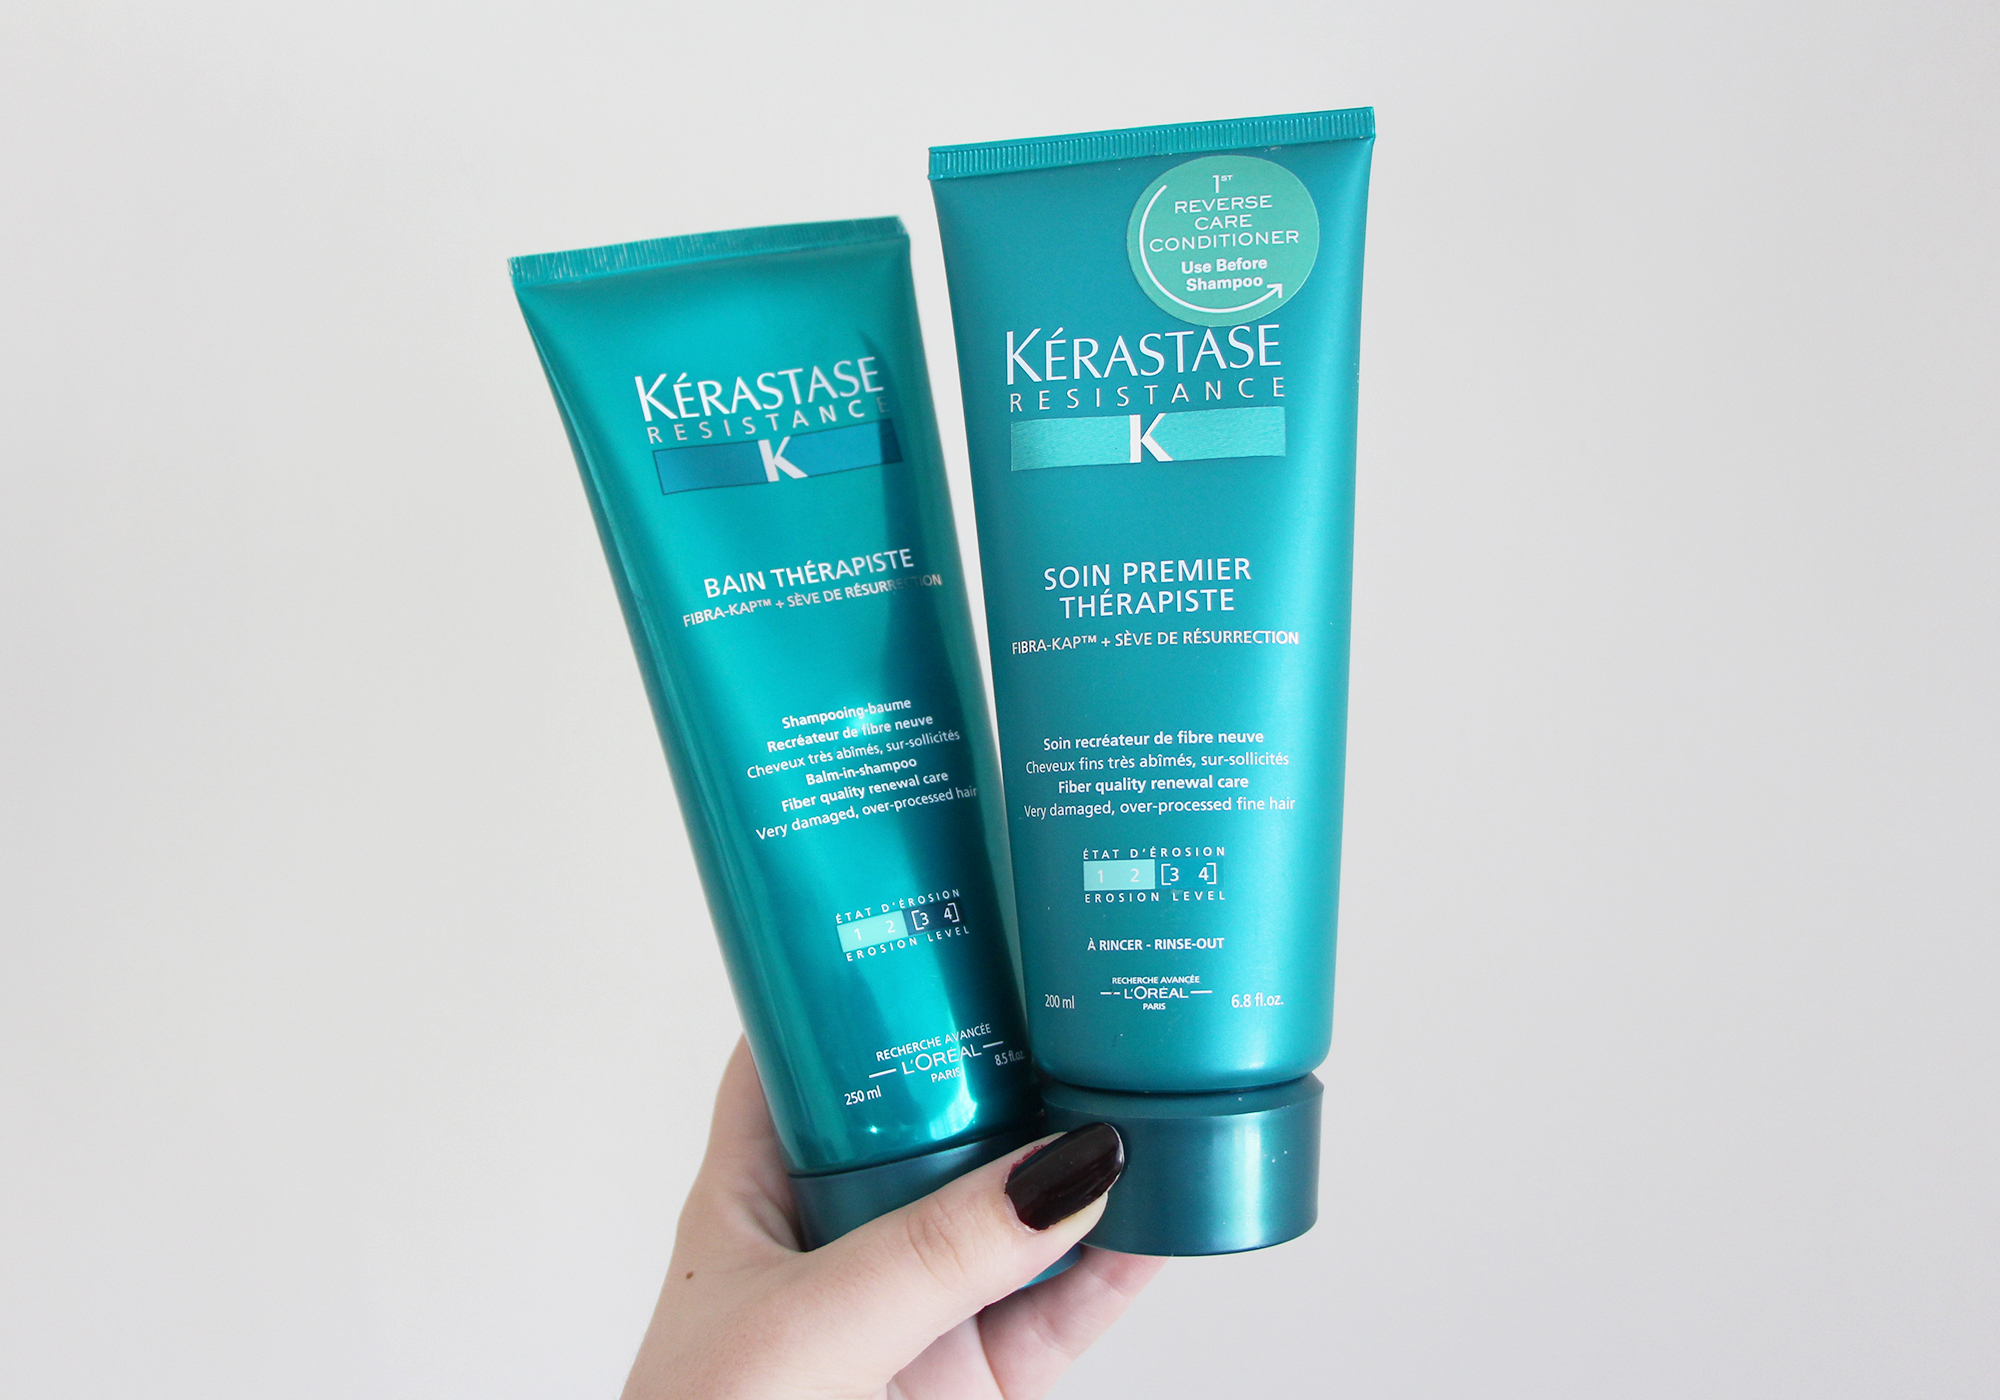 K rastase resistance bain therapiste shampoo conditioner for Kerastase bain miroir conditioner